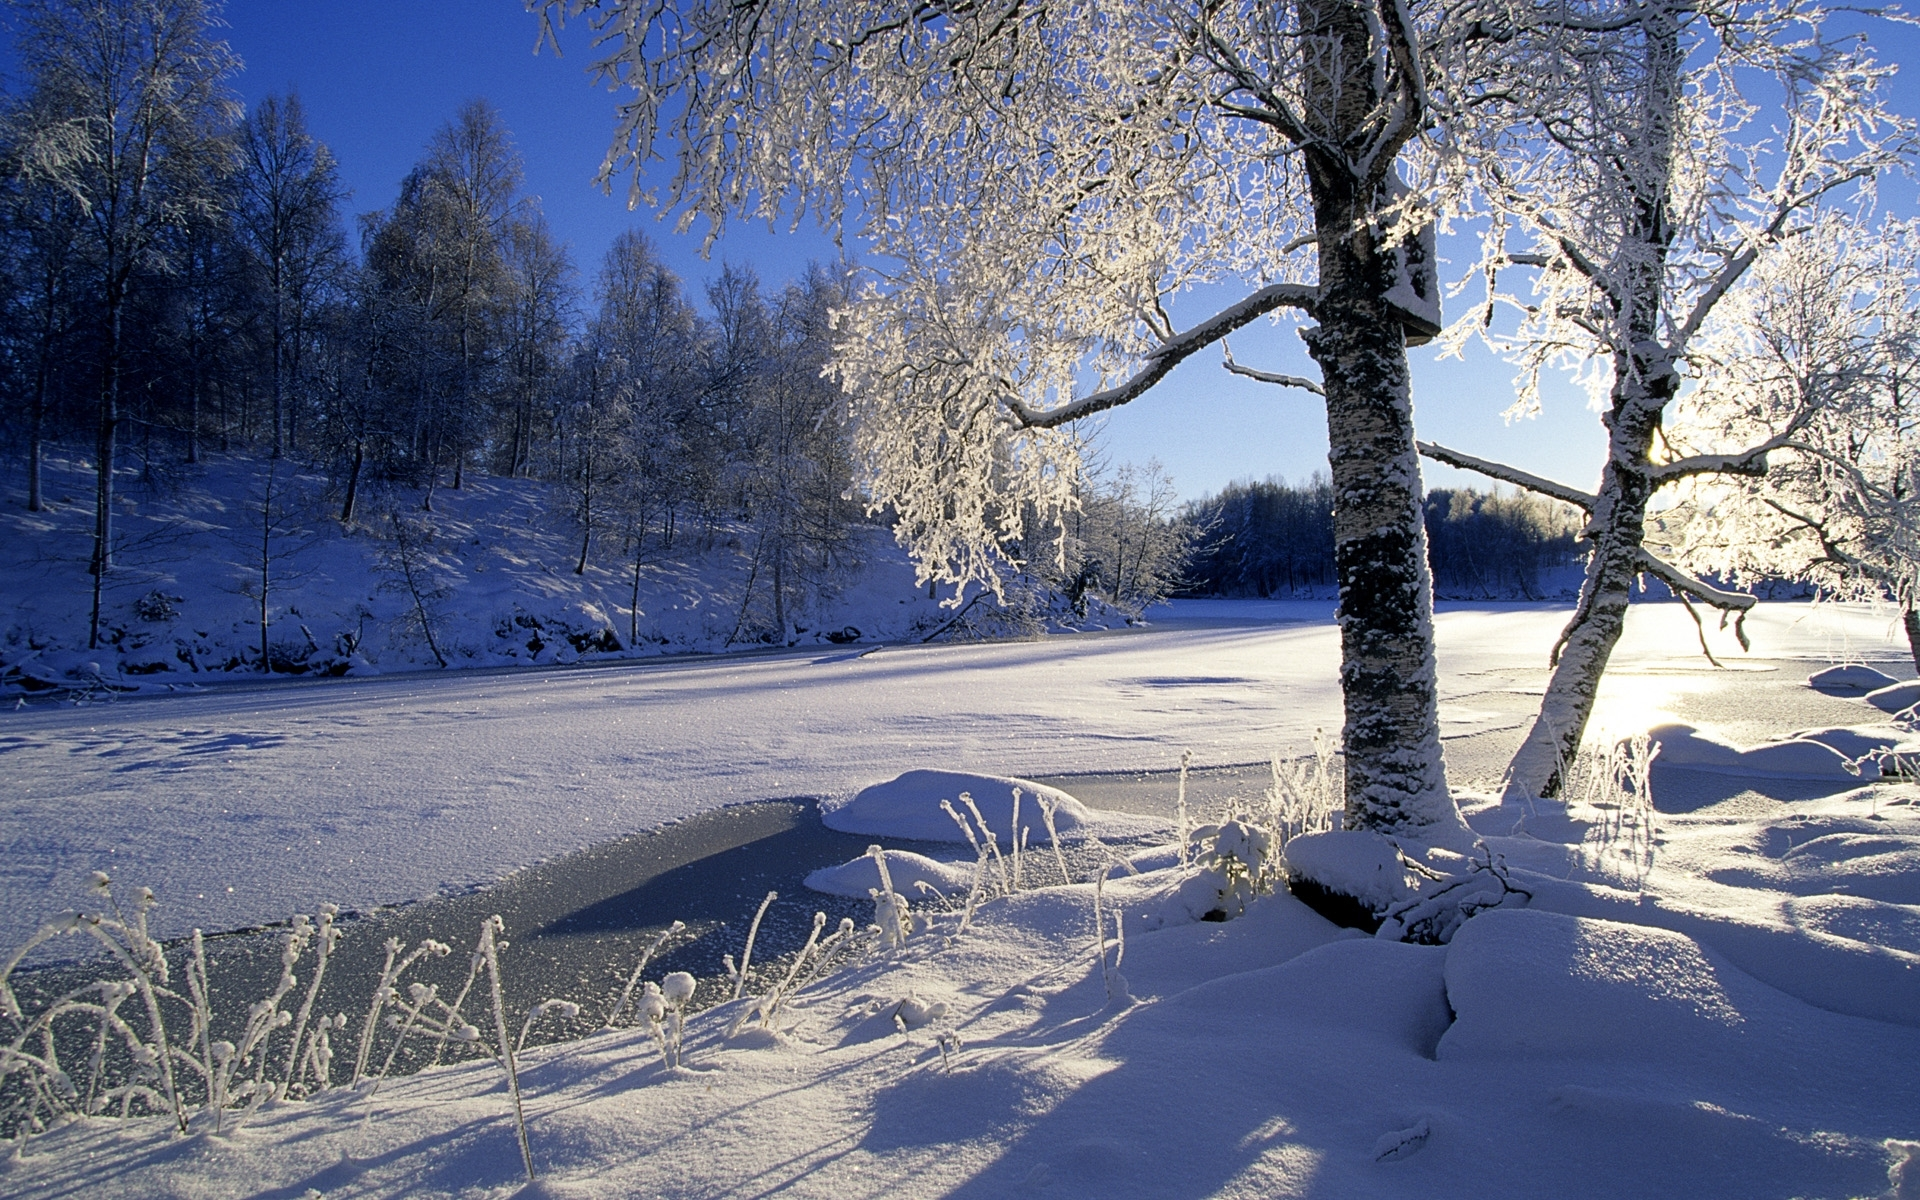 26558 download wallpaper Landscape, Winter, Trees, Sun, Snow screensavers and pictures for free